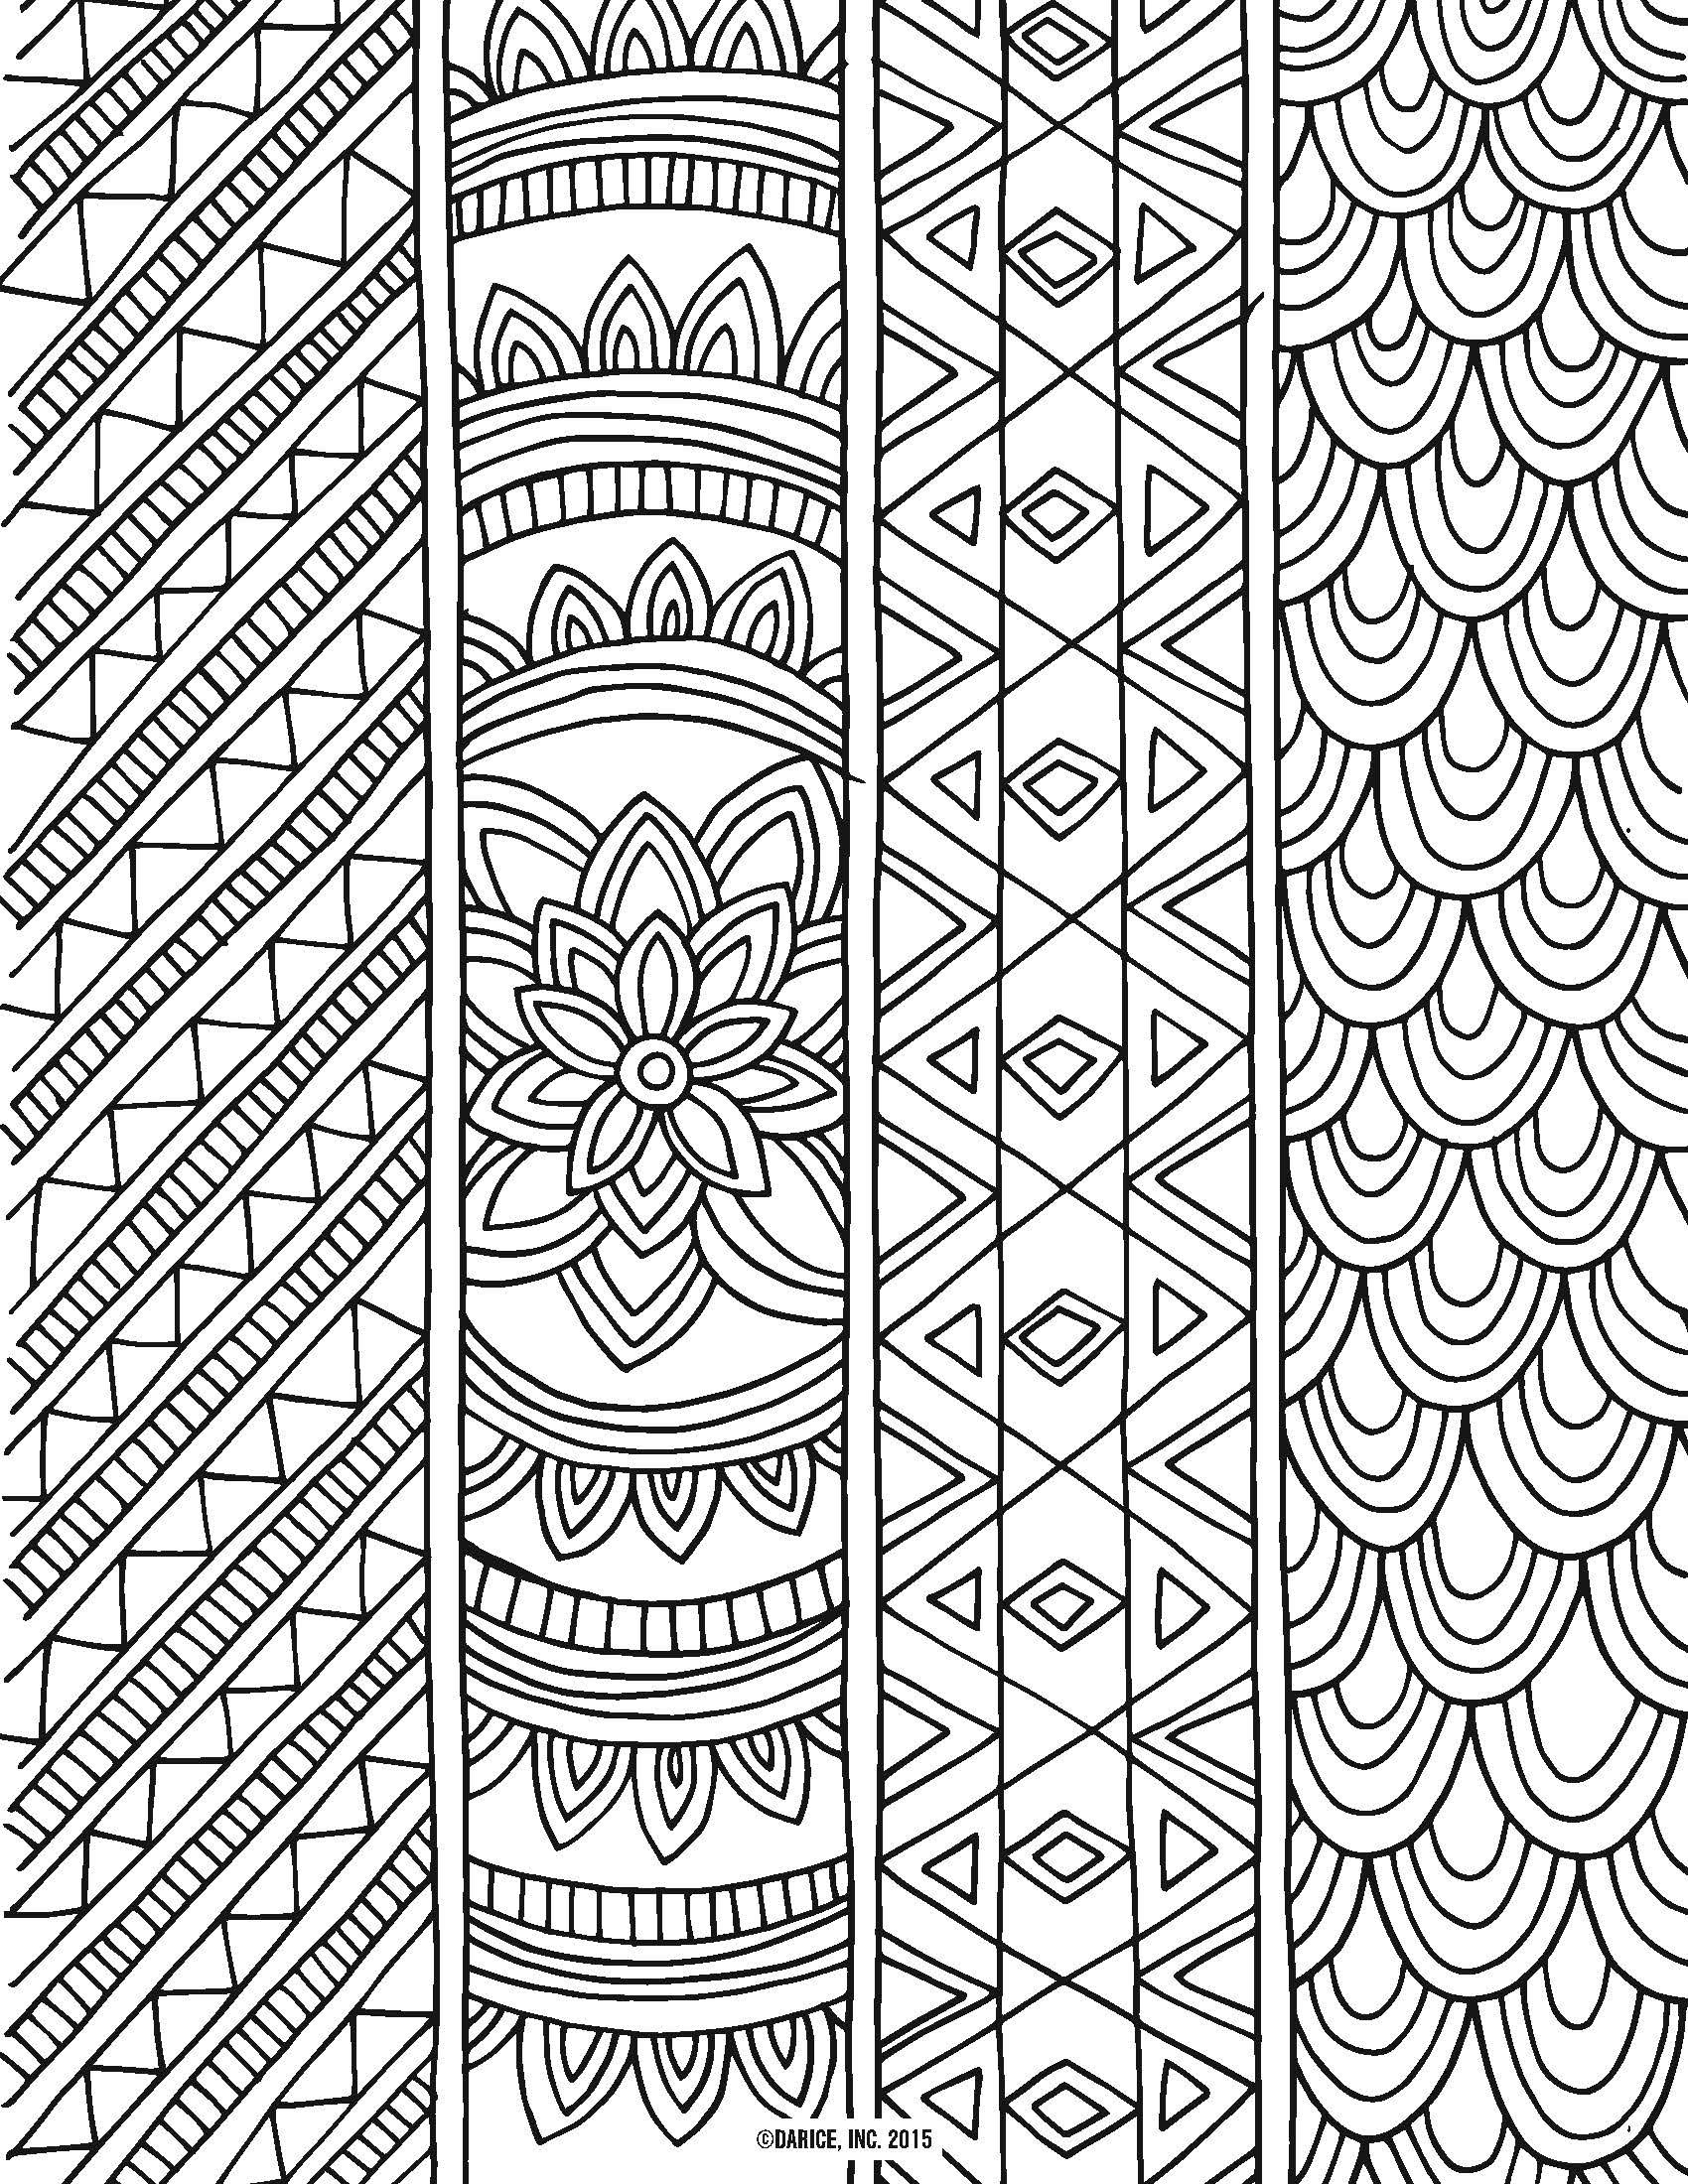 Coloring adults books - Try Out The Adult Coloring Book Trend For Yourself With Our 9 Free Adult Coloring Pages